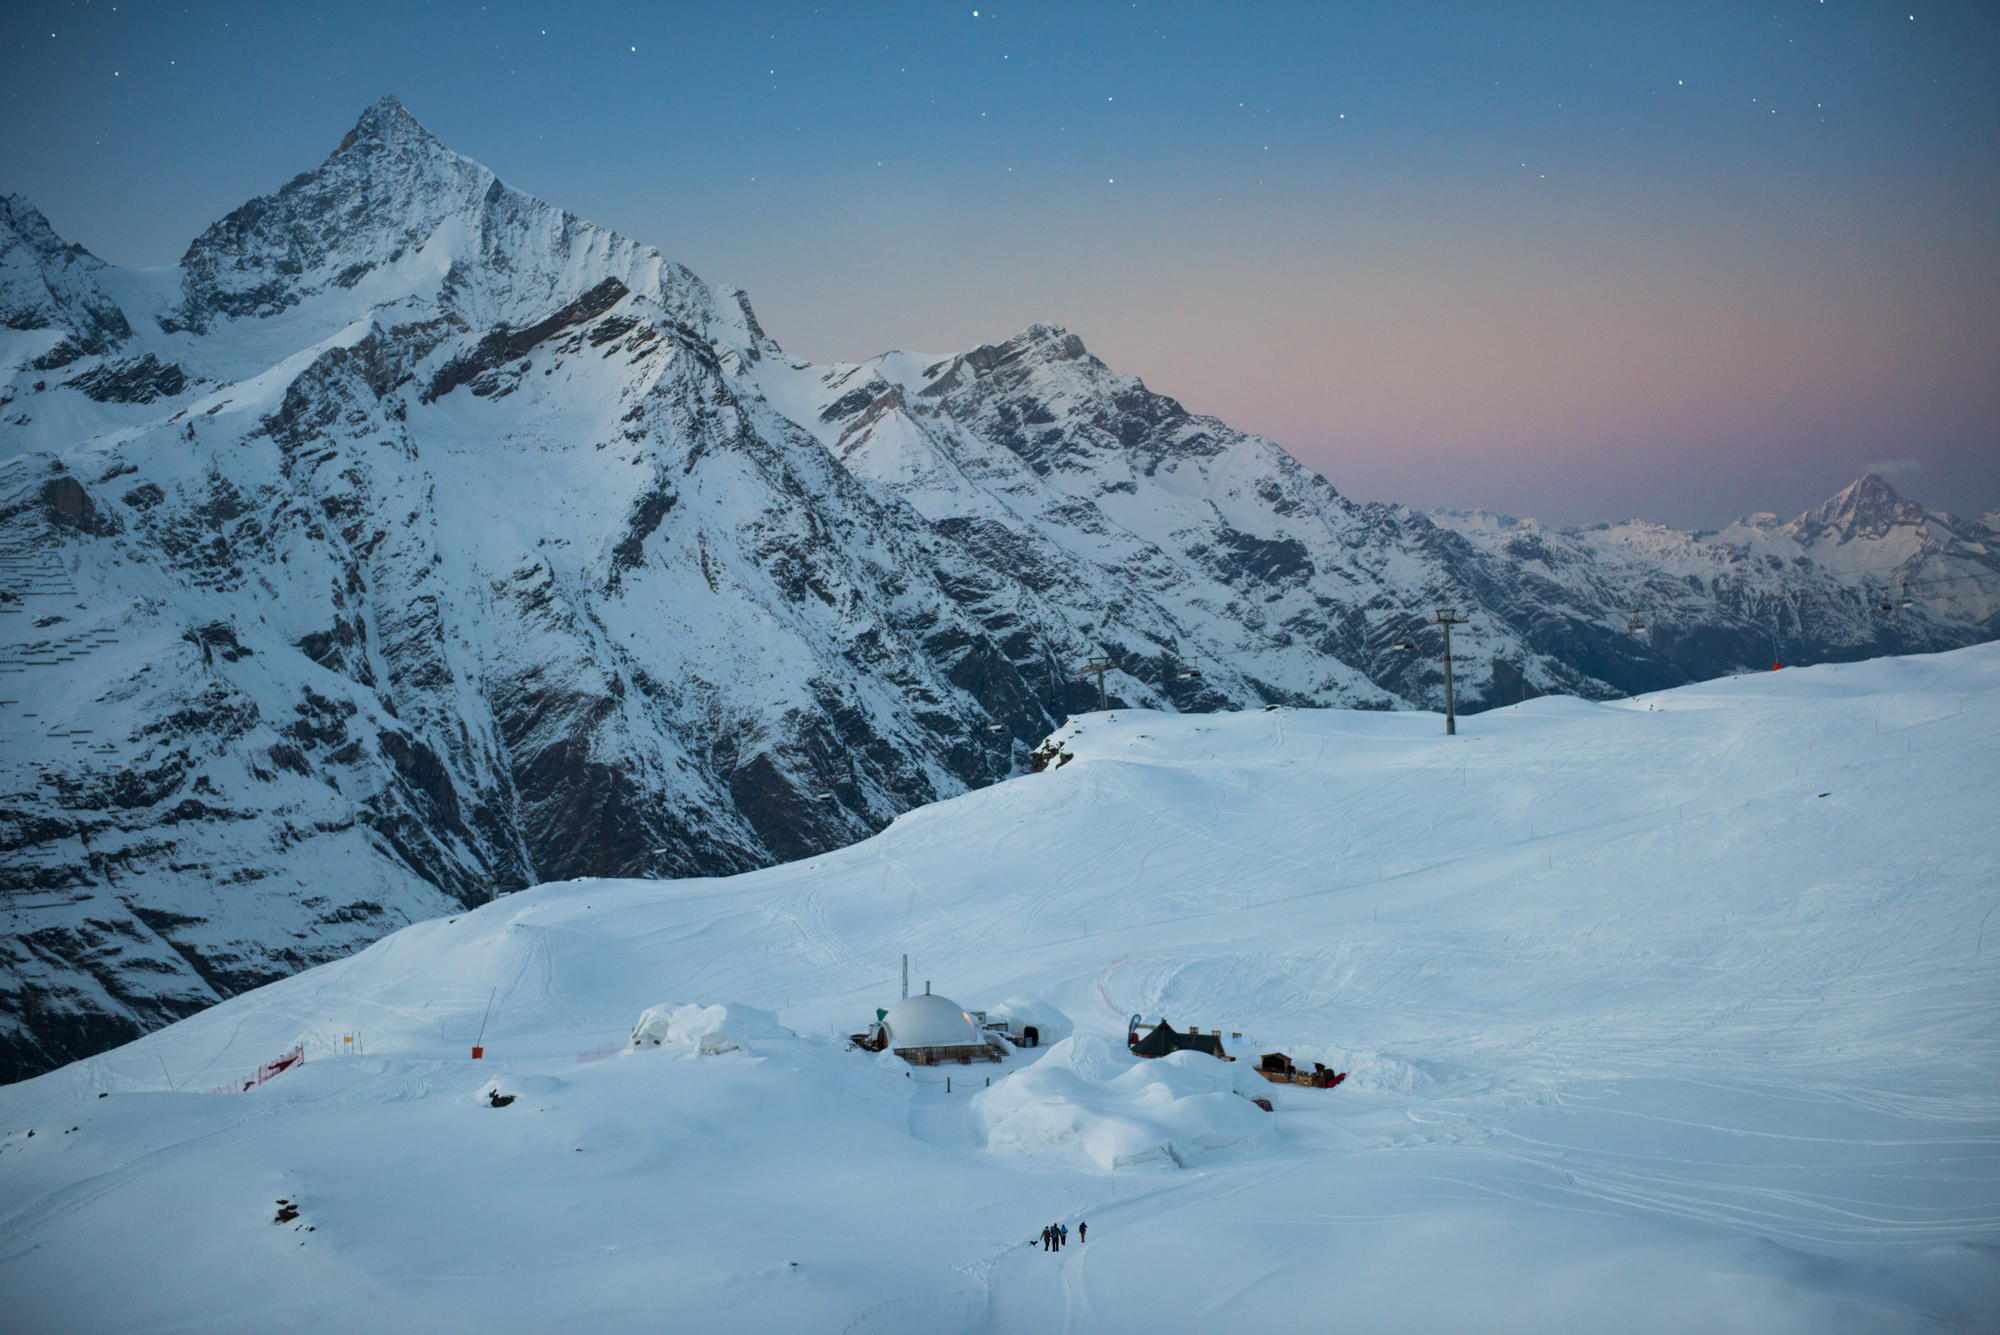 A snowy mountain scene at dusk